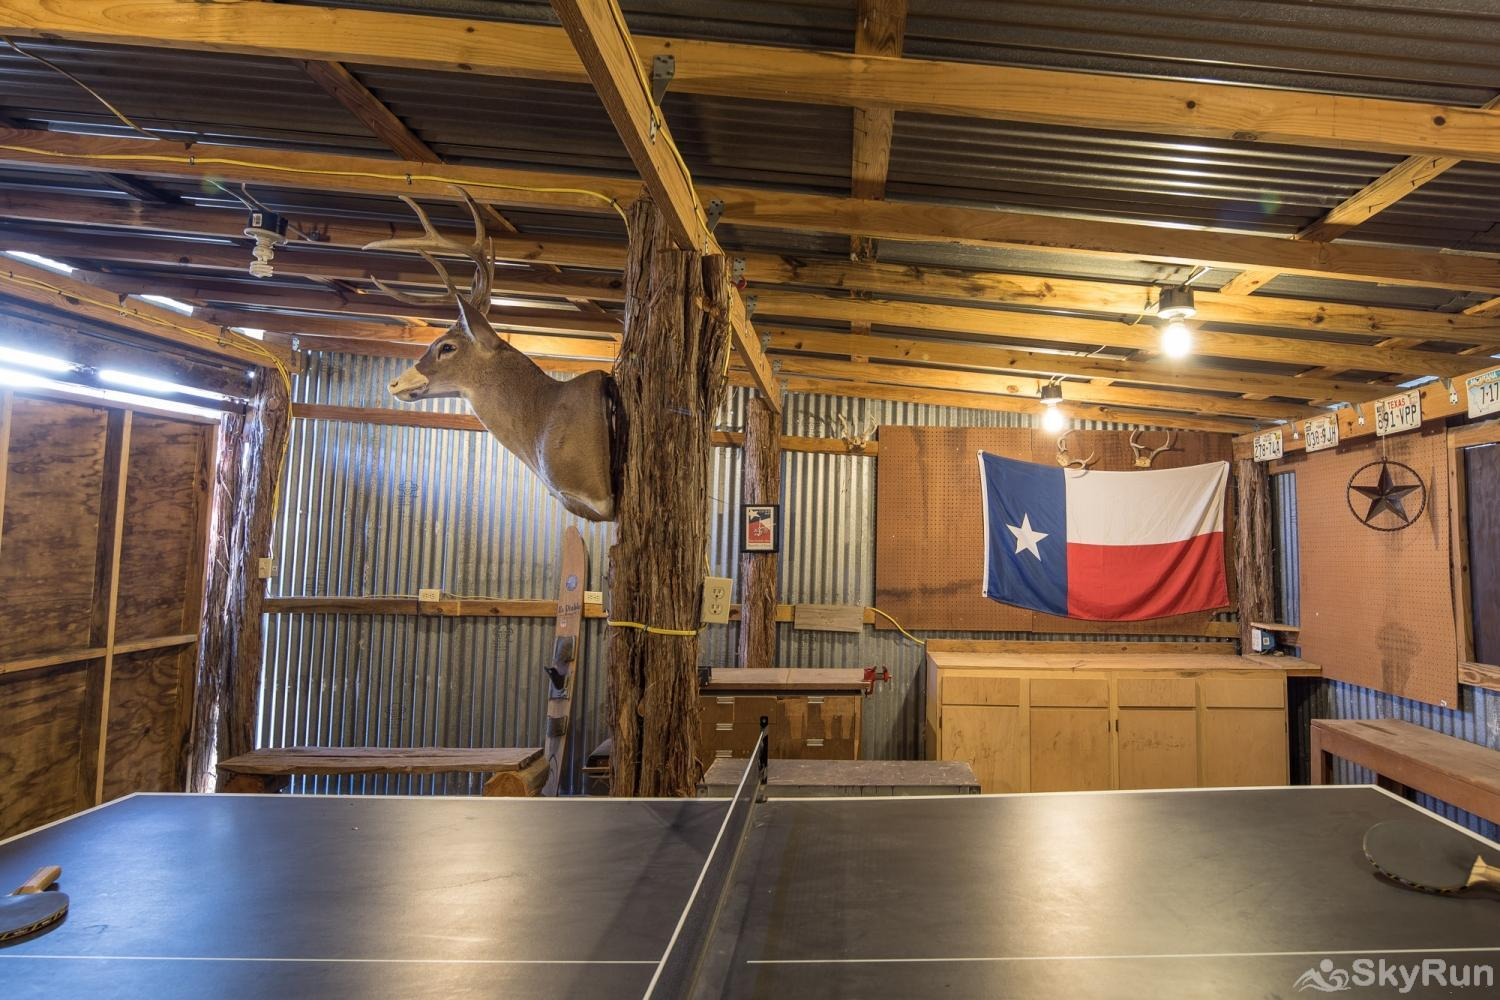 SHEPHERD'S LODGE Rustic barn with ping pong table